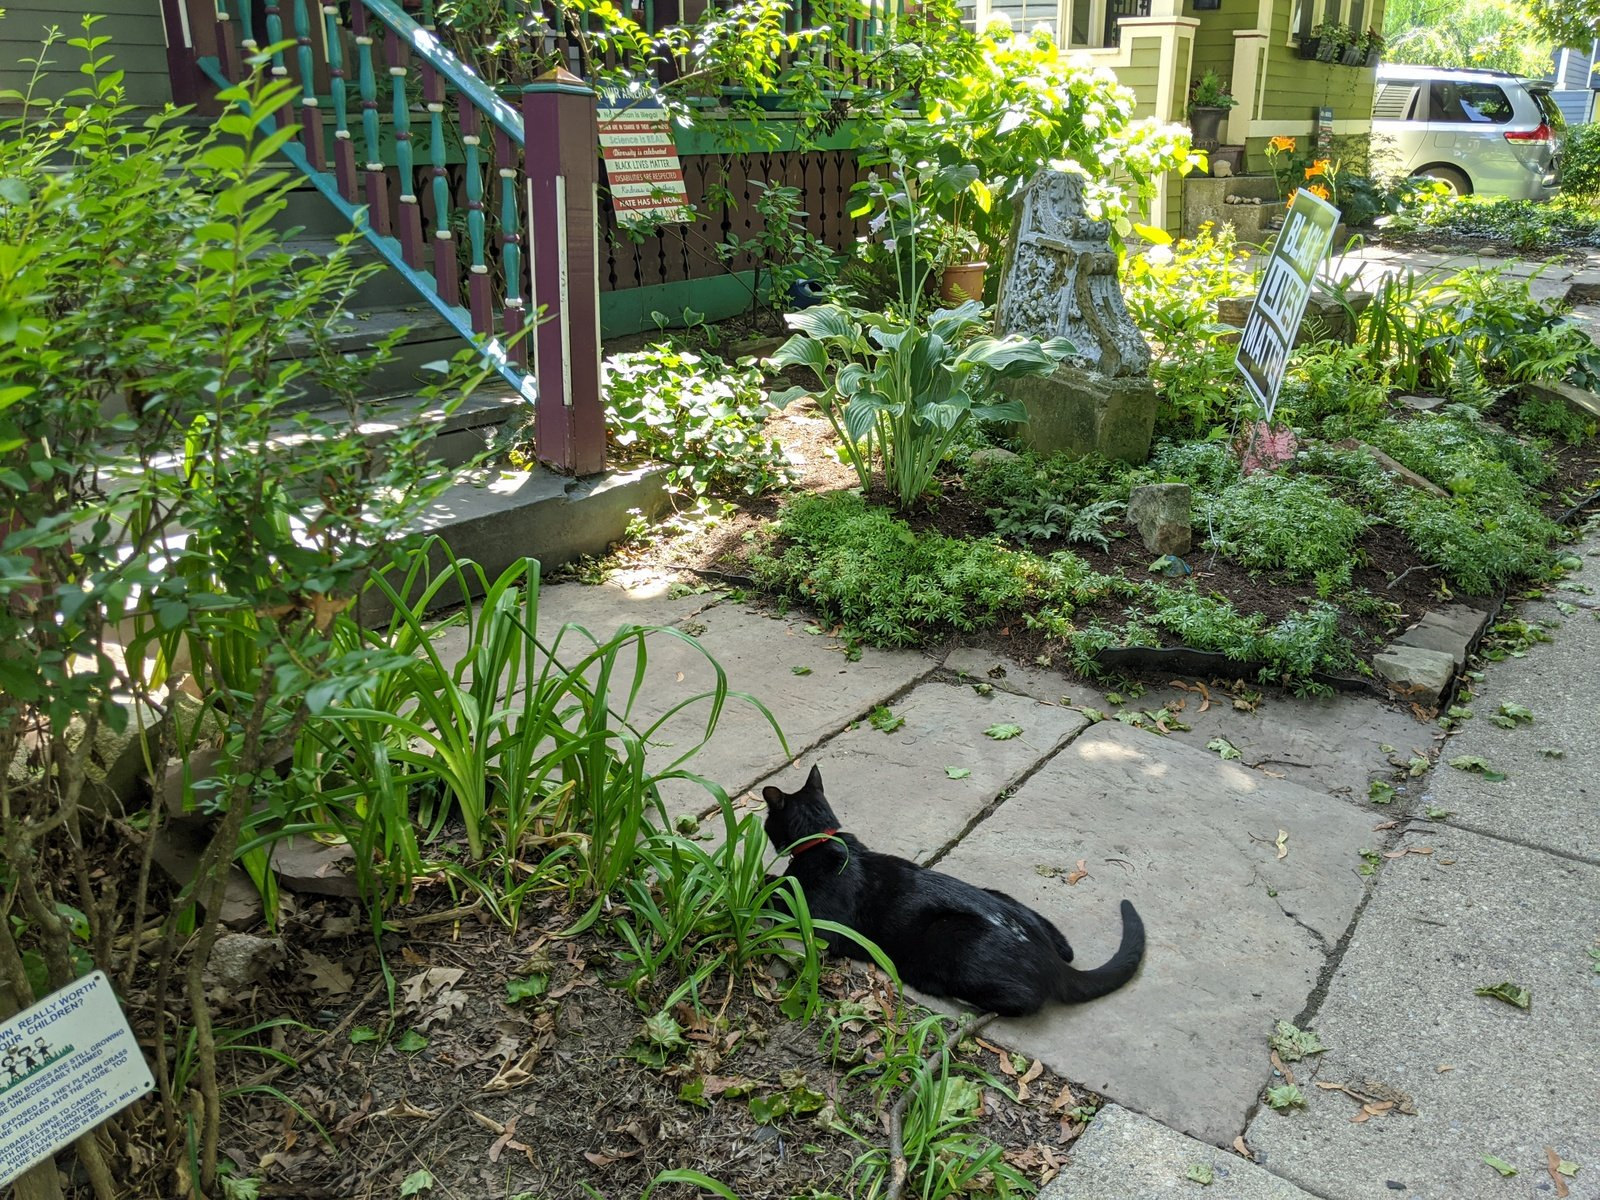 black cat lounges on a path in front of a house